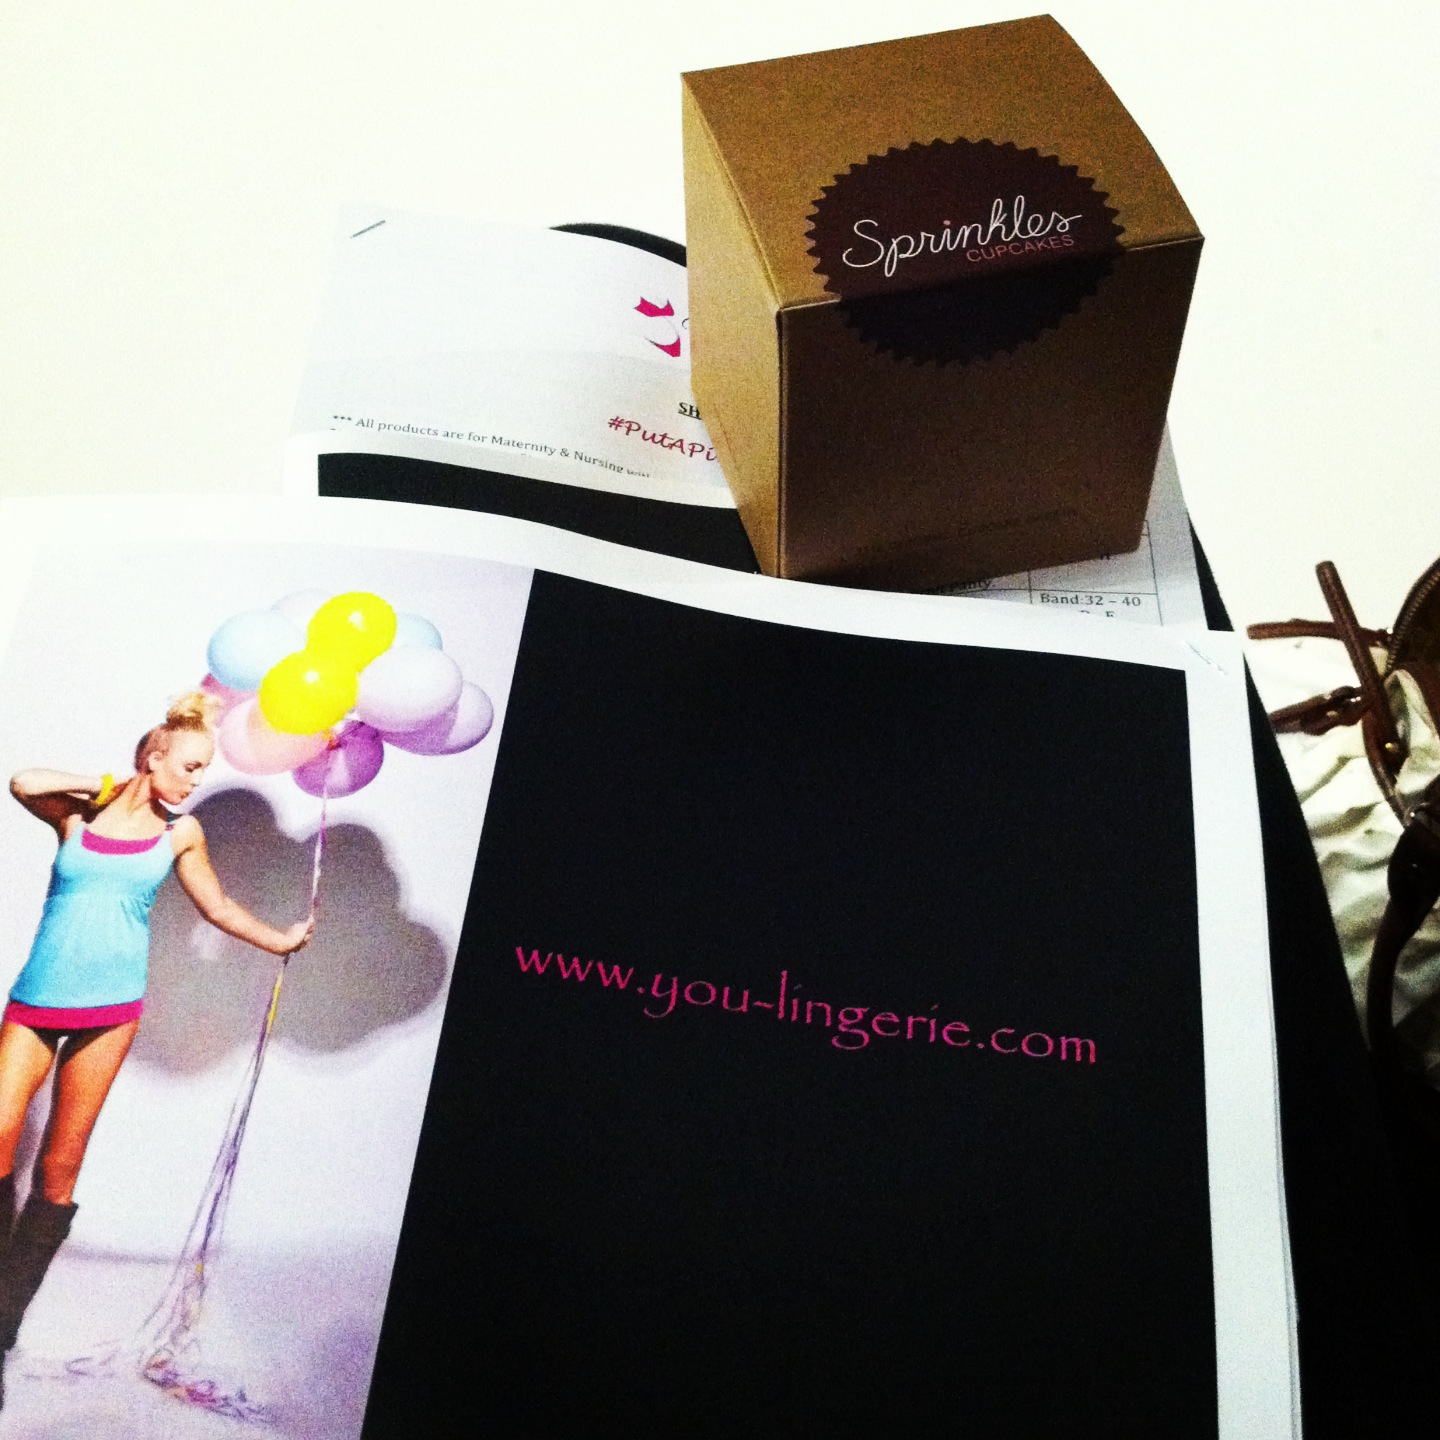 Everyone got to enjoy a cupcake from Sprinkles! What's better that baked goods and lingerie?